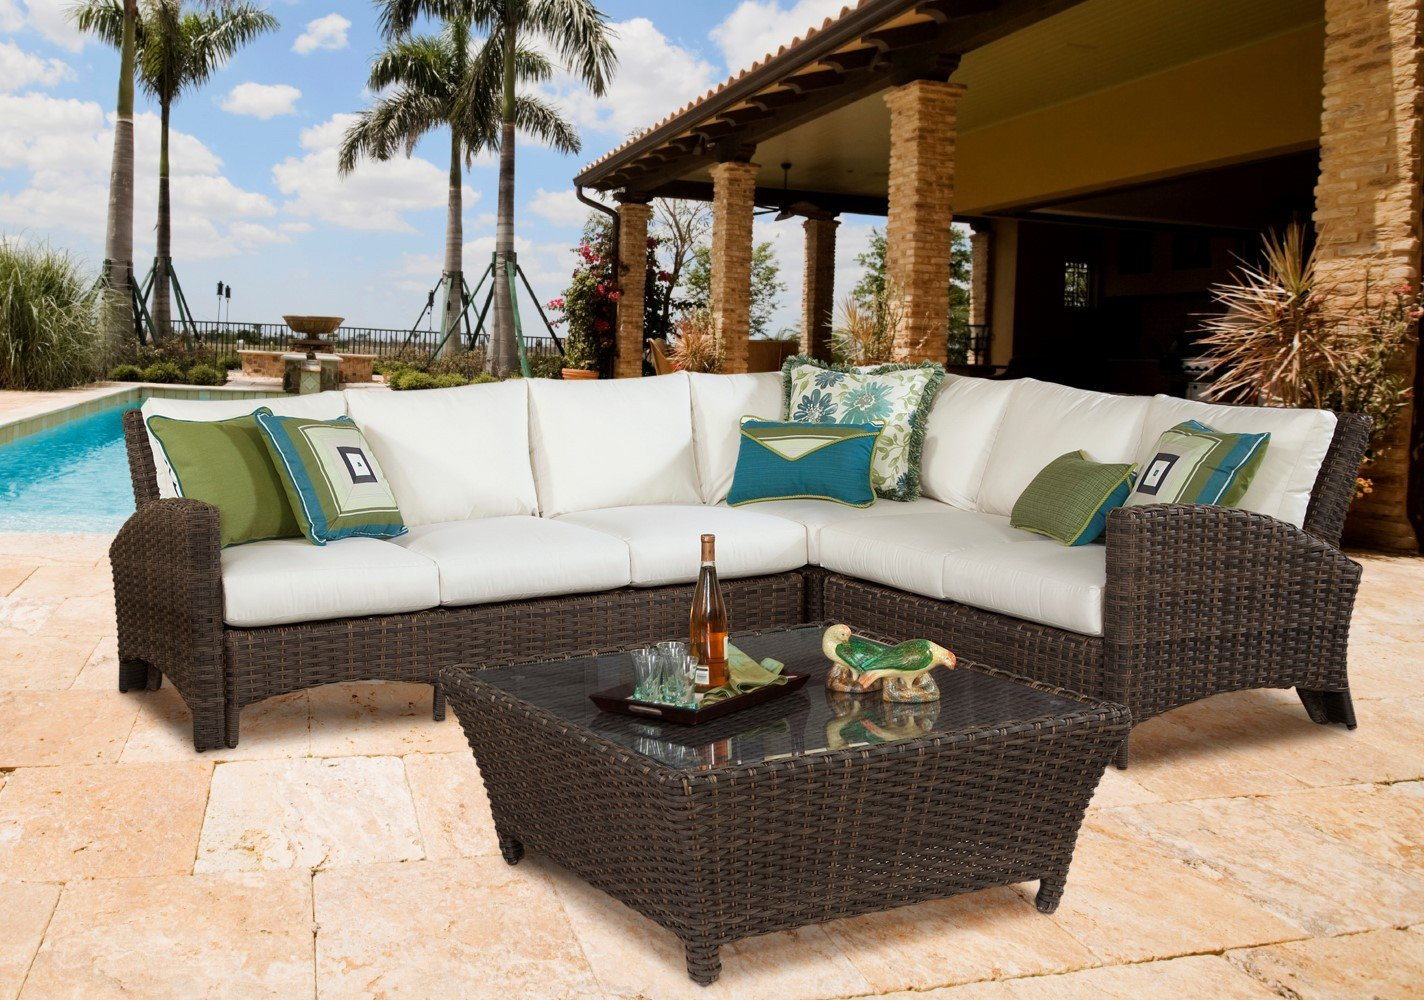 South Sea Rattan South Sea Rattan Panama One Arm Loveseat Right-Side Facing Sectional Sectional Piece - Rattan Imports